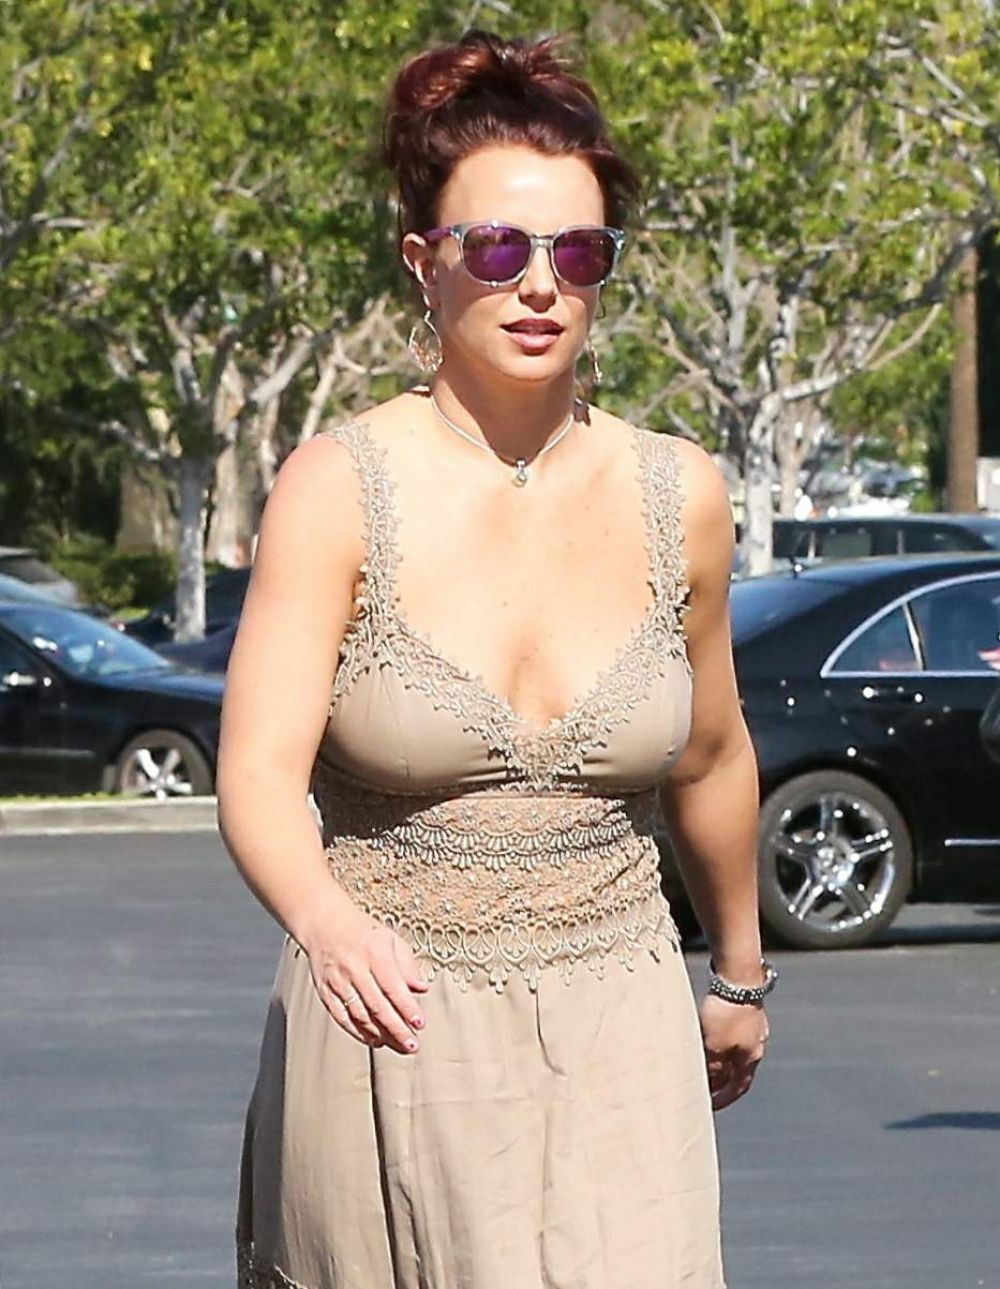 BRITNEY SPEARS Arrives at Marmalade Cafe in Calabasas